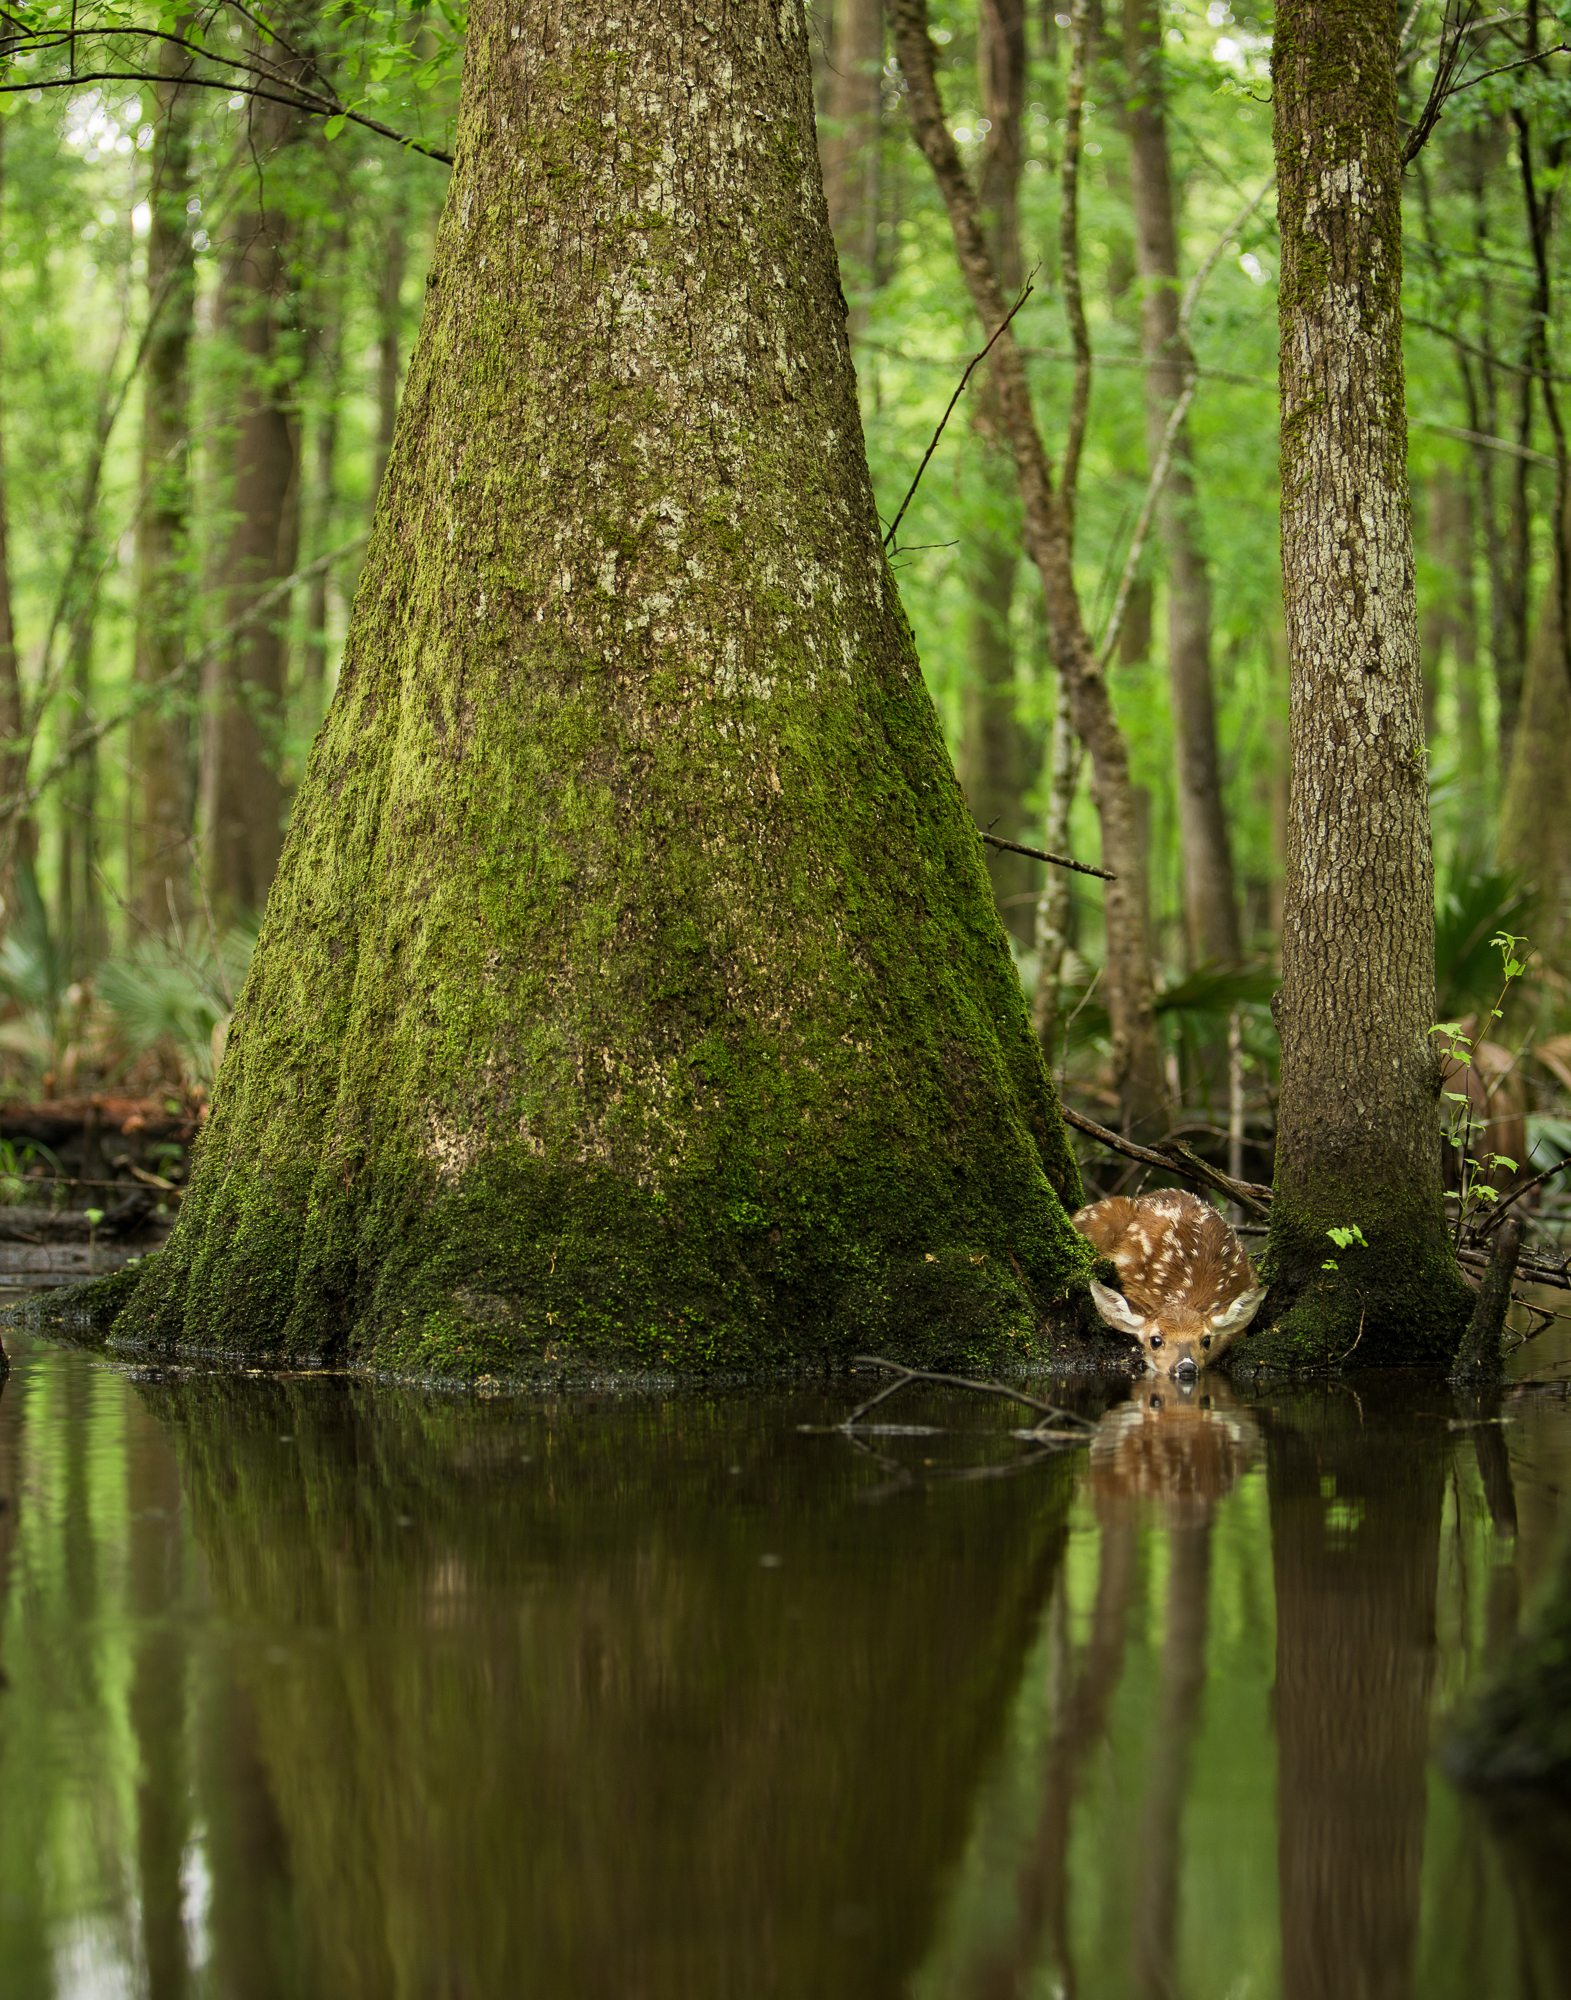 Southern wetland forests are home to hundreds of endemic species, found nowhere else on earth.